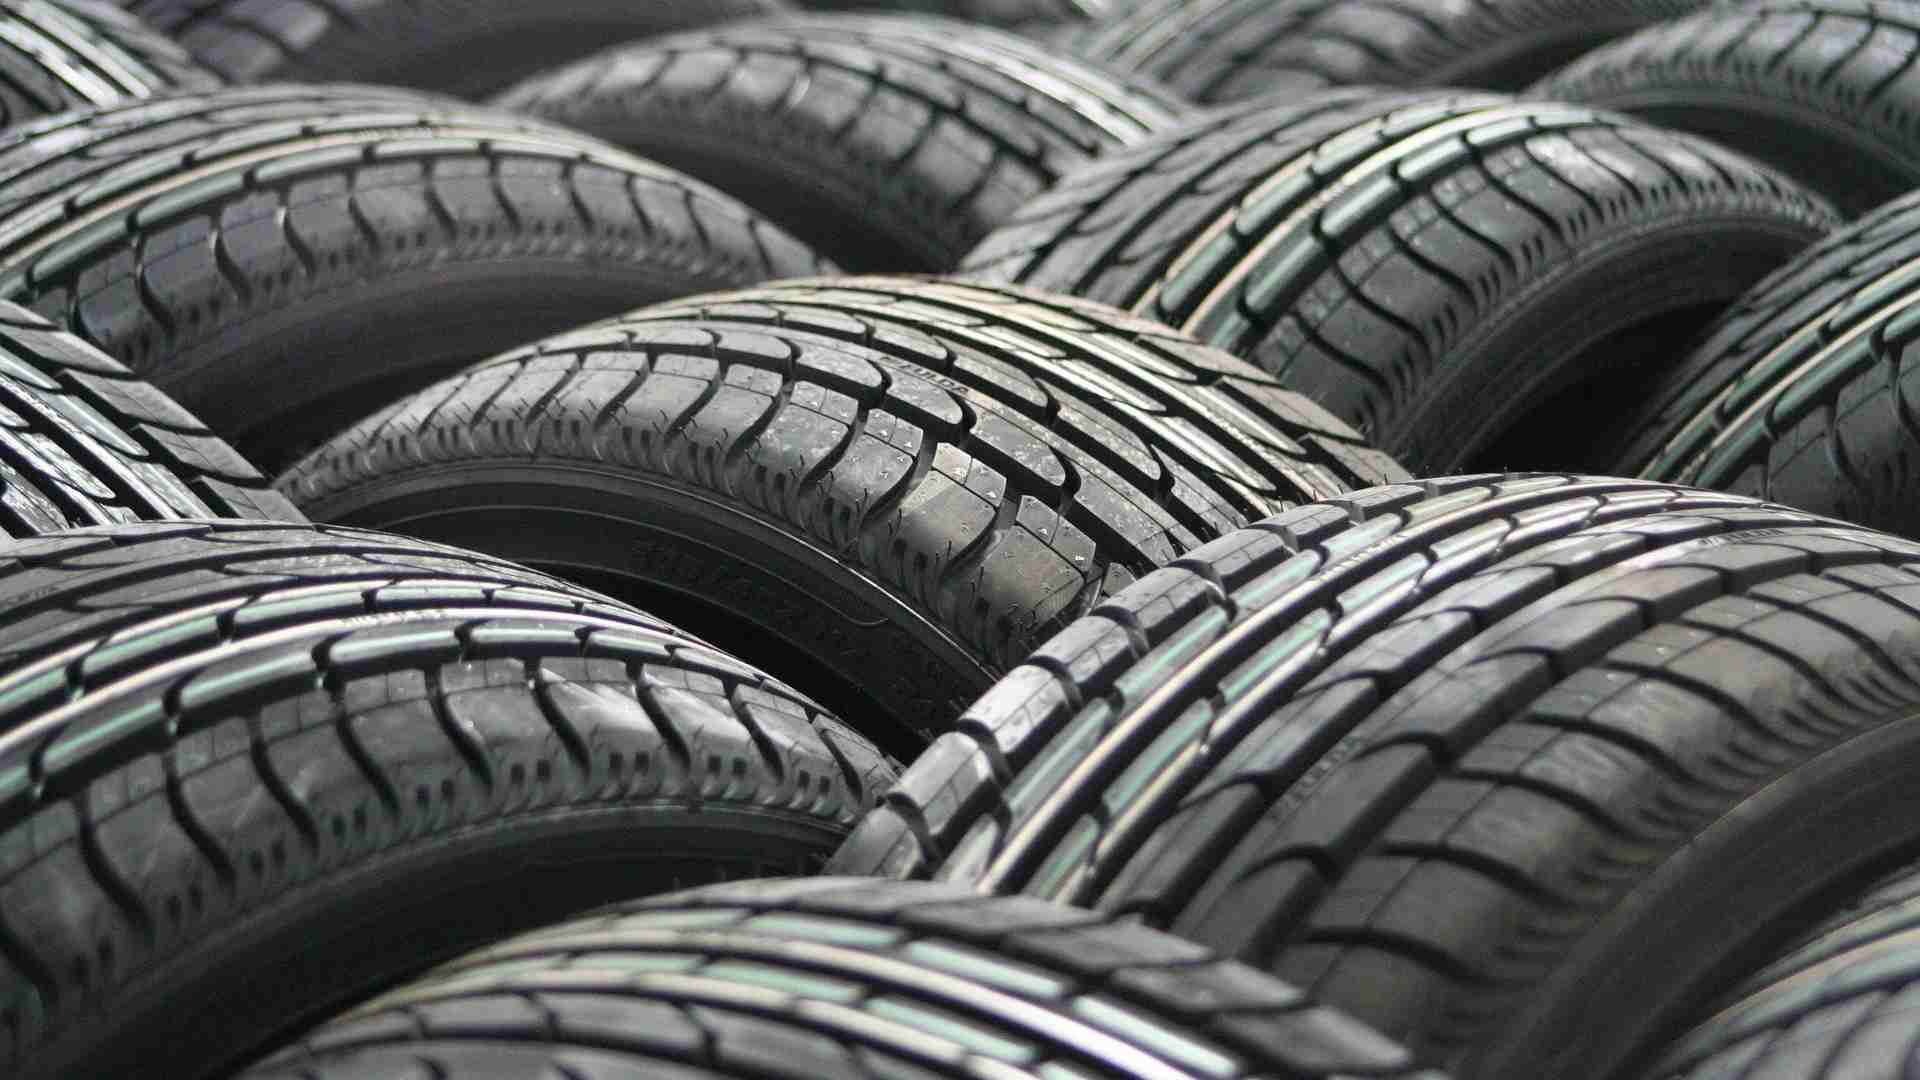 The new rules for vehicle tyres proposed by MoRTH are similar to the regime in Europe. Image: E Bouman from Pixabay